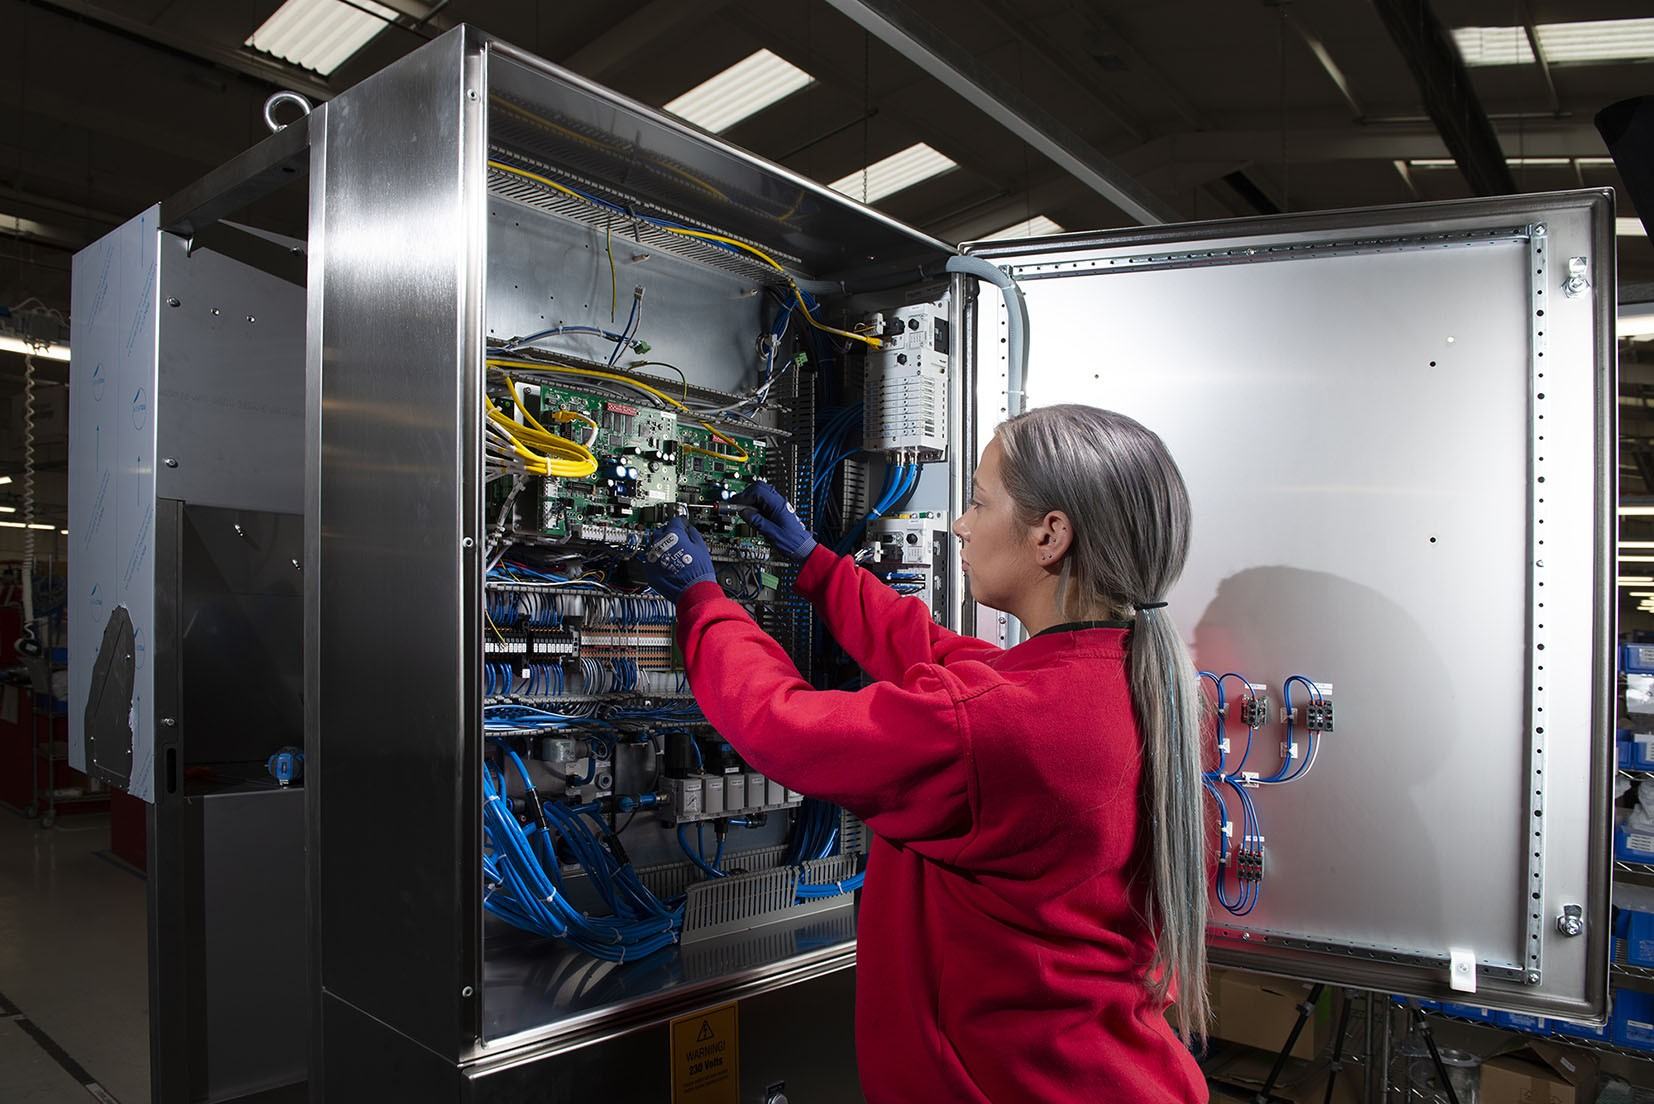 PP C&A targets training boost with investment in Bright Sparks initiative » Control Panel Build June 20 » PP Control & Automation